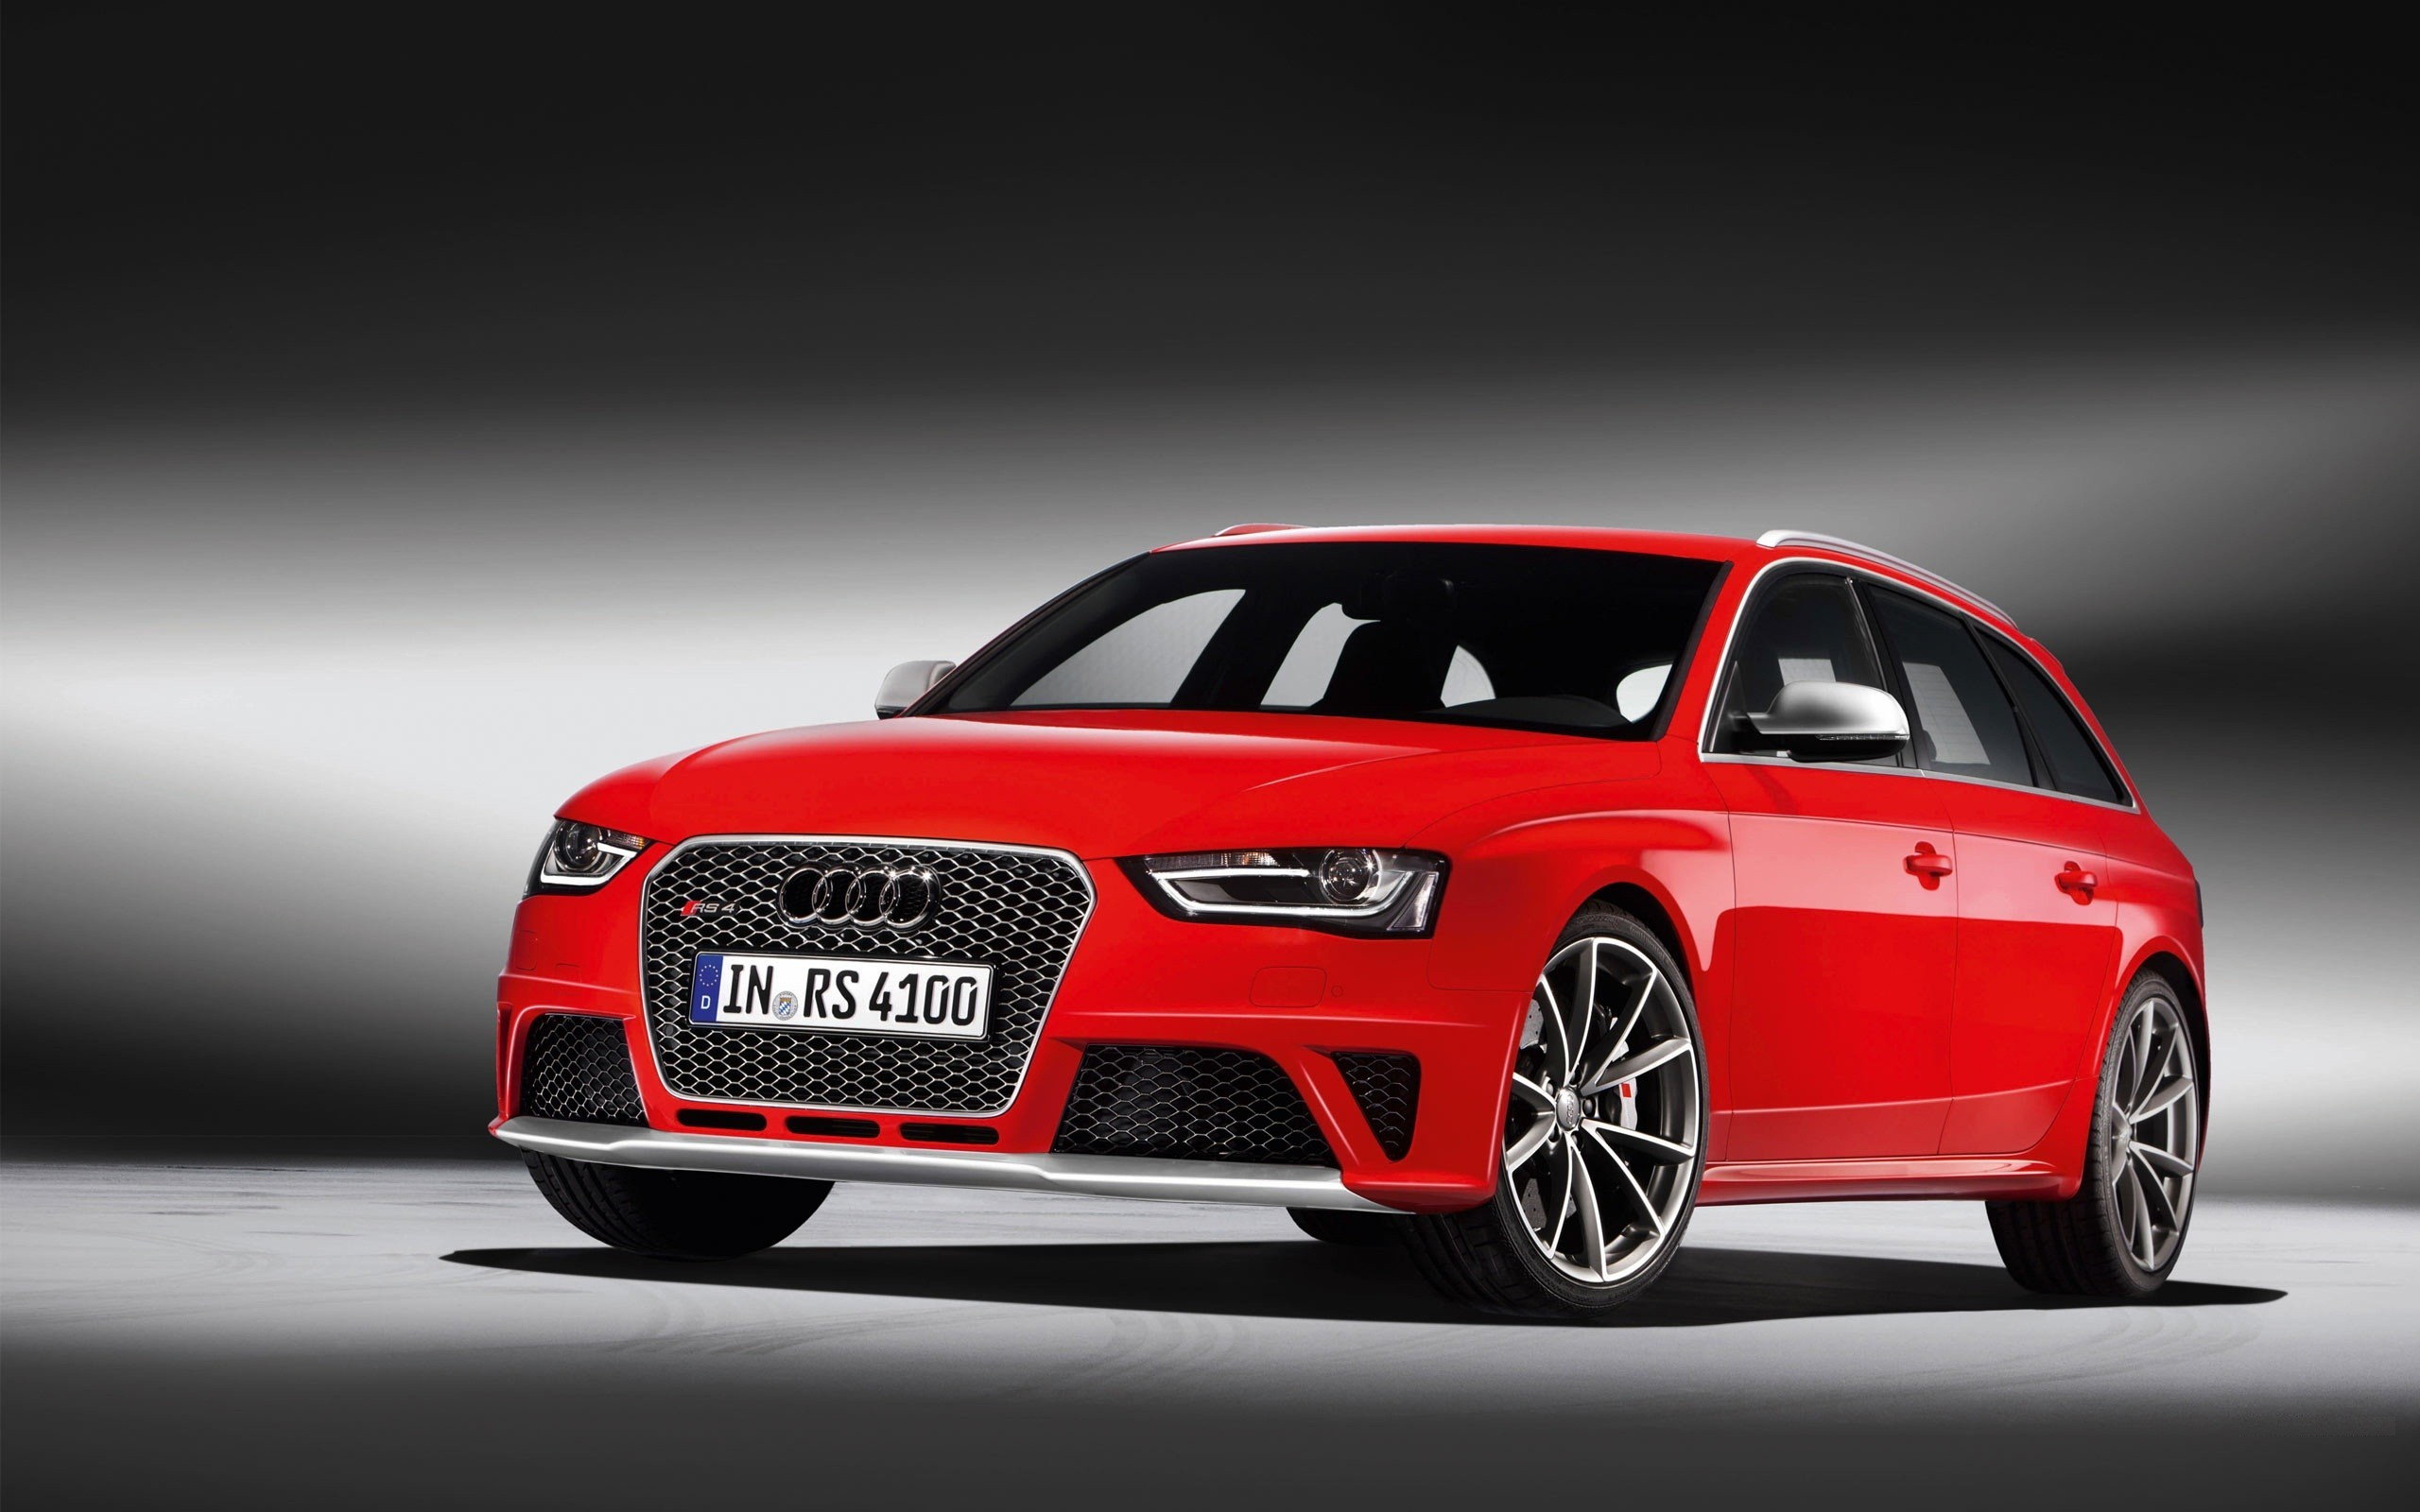 Audi rs4 avant cars red sports wallpapers